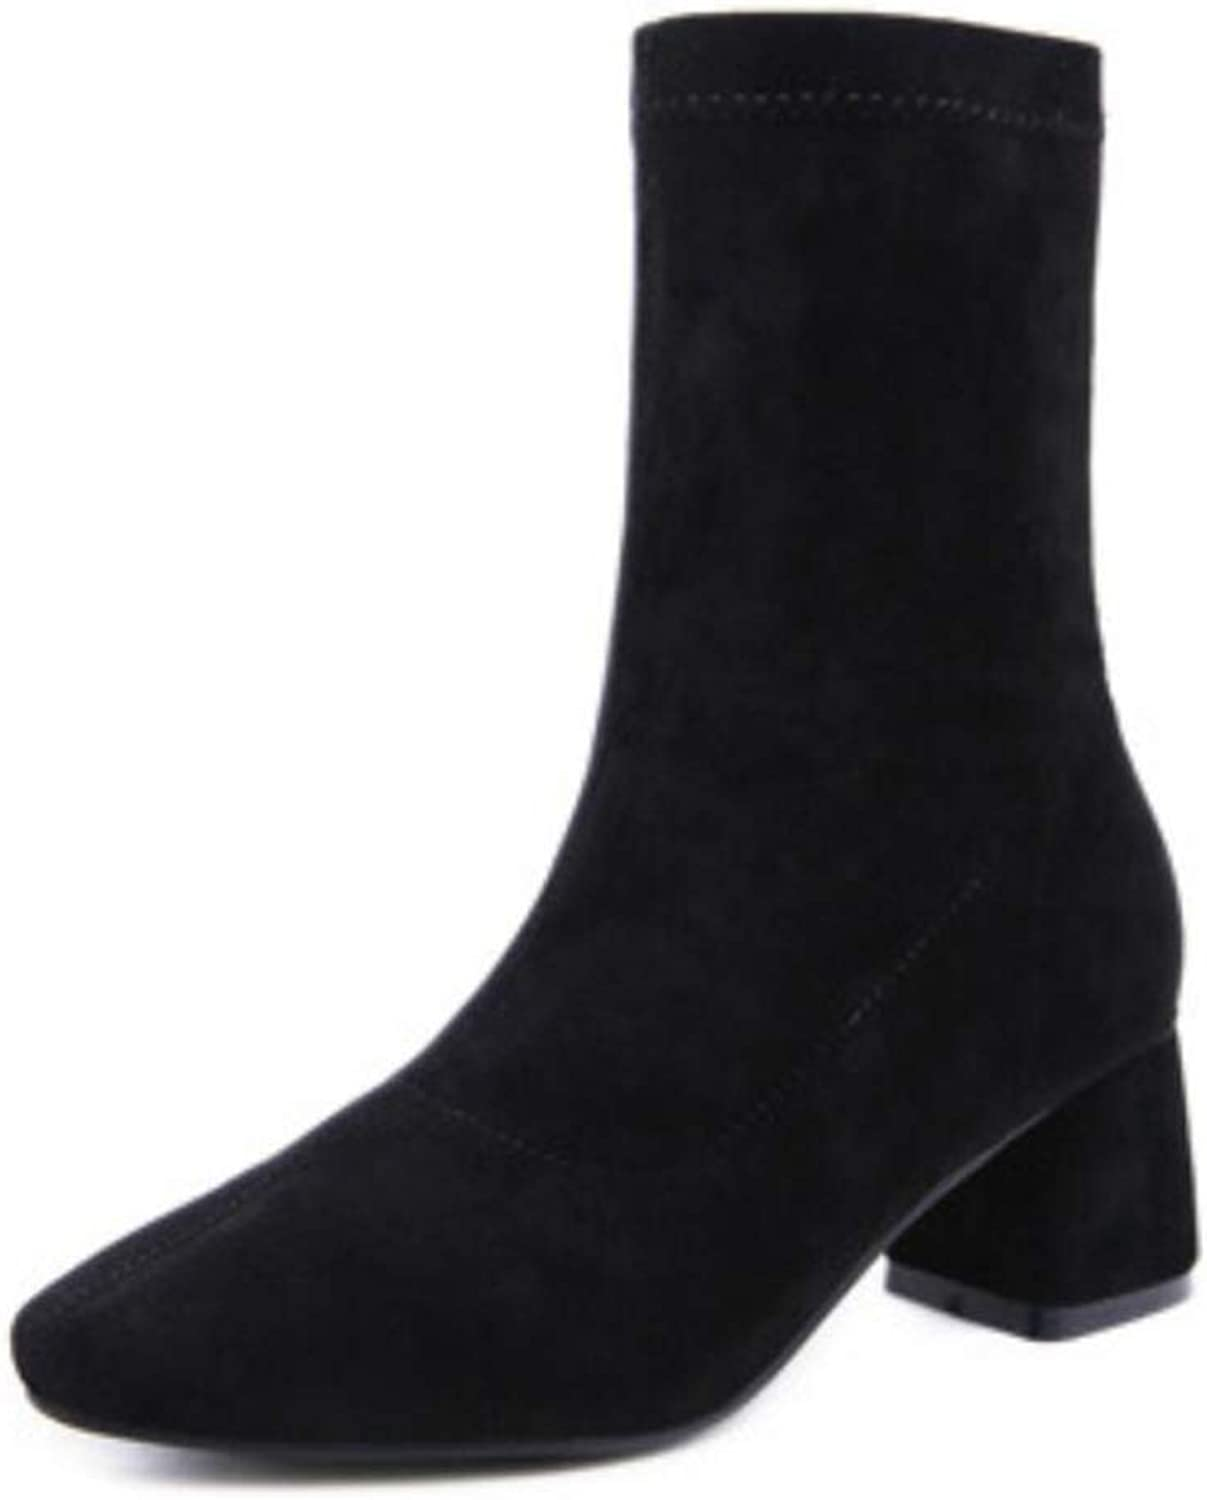 Women's Boots Autumn New Chunky Heel Round Head Wool Knit Boots Ankle Boots Stretch Boots